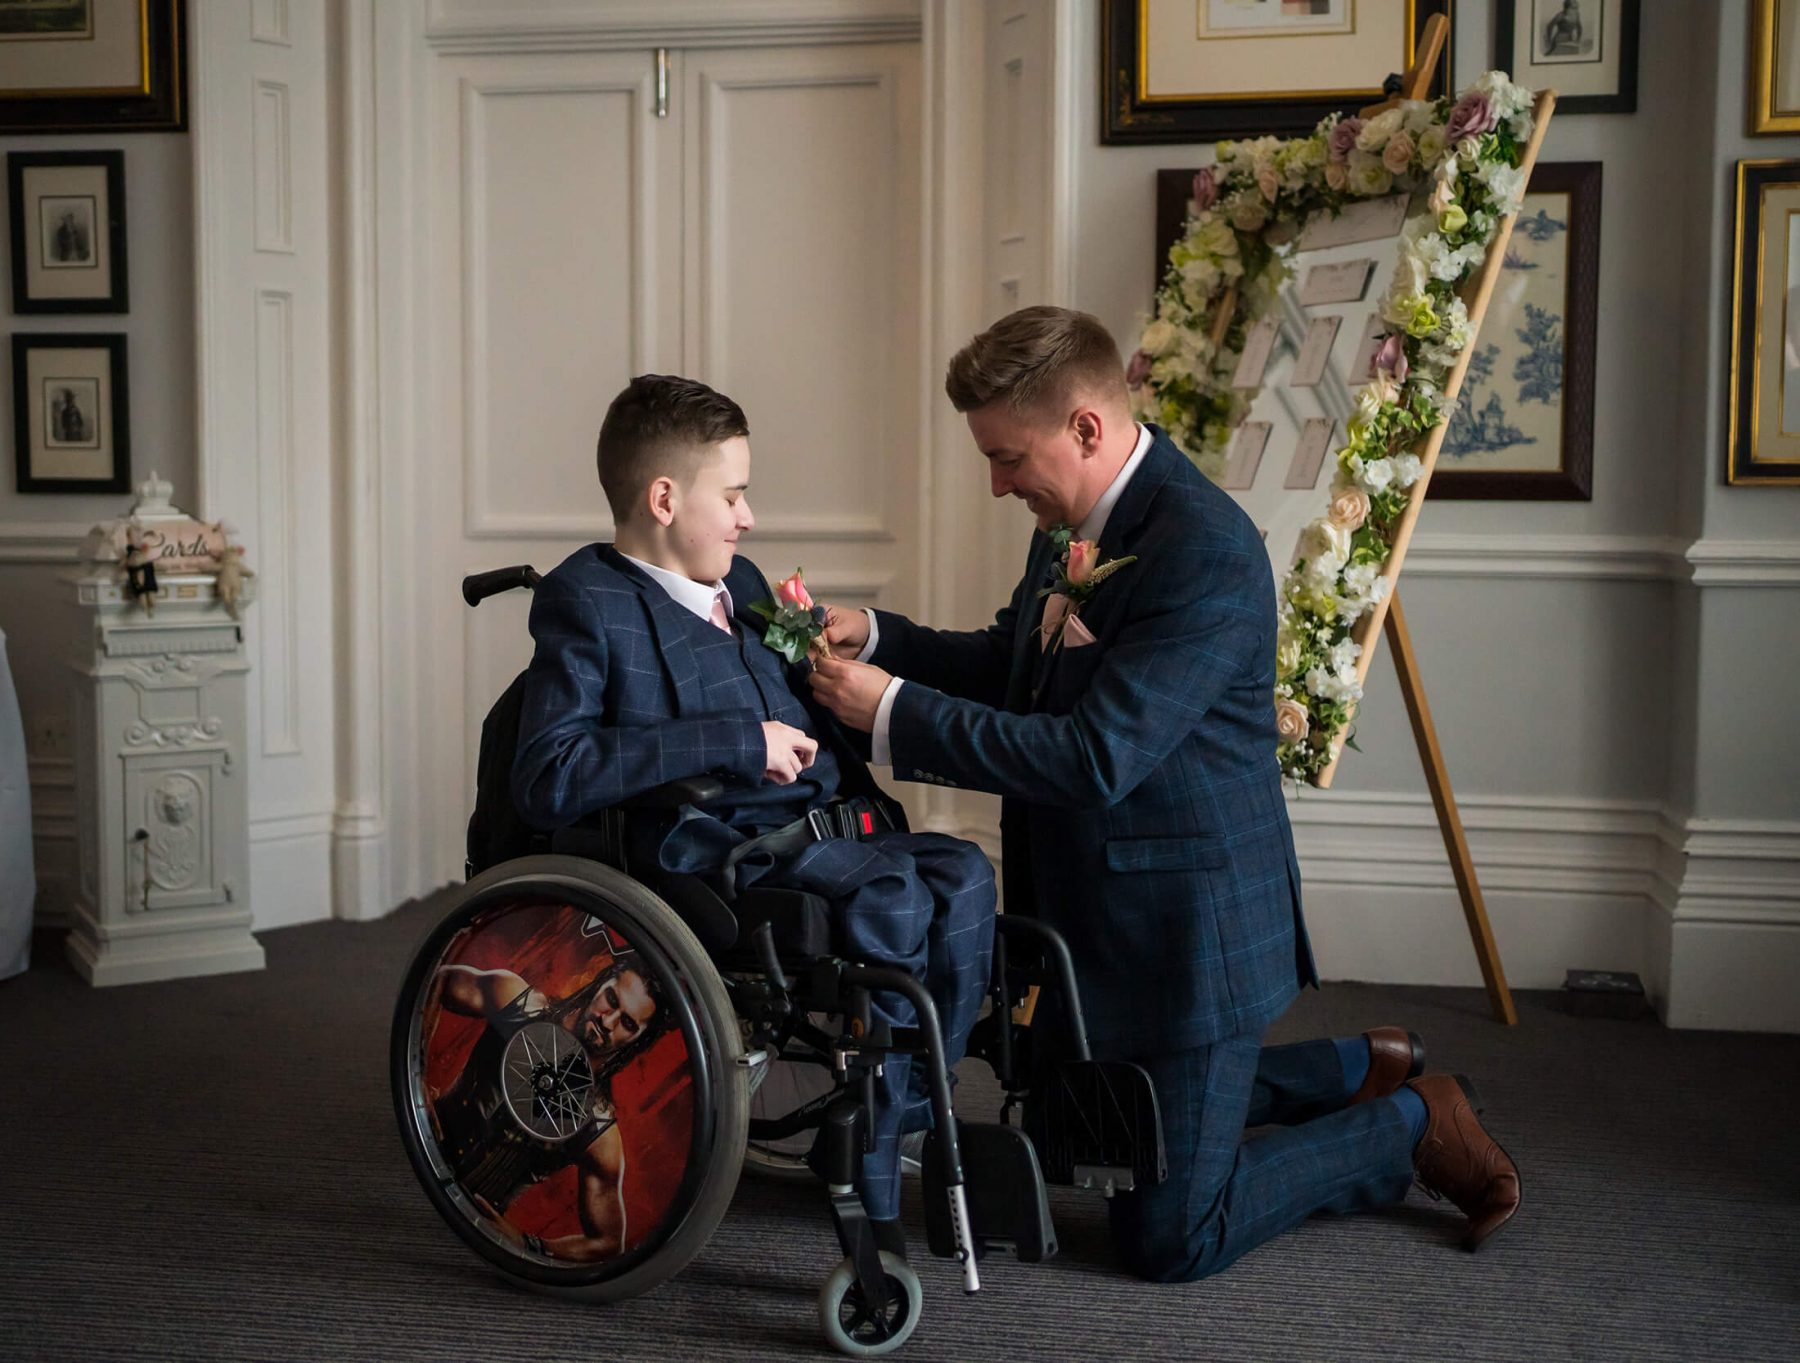 Hollin Hall Hotel Wedding Photographer - The groom pins a flower on the brides son